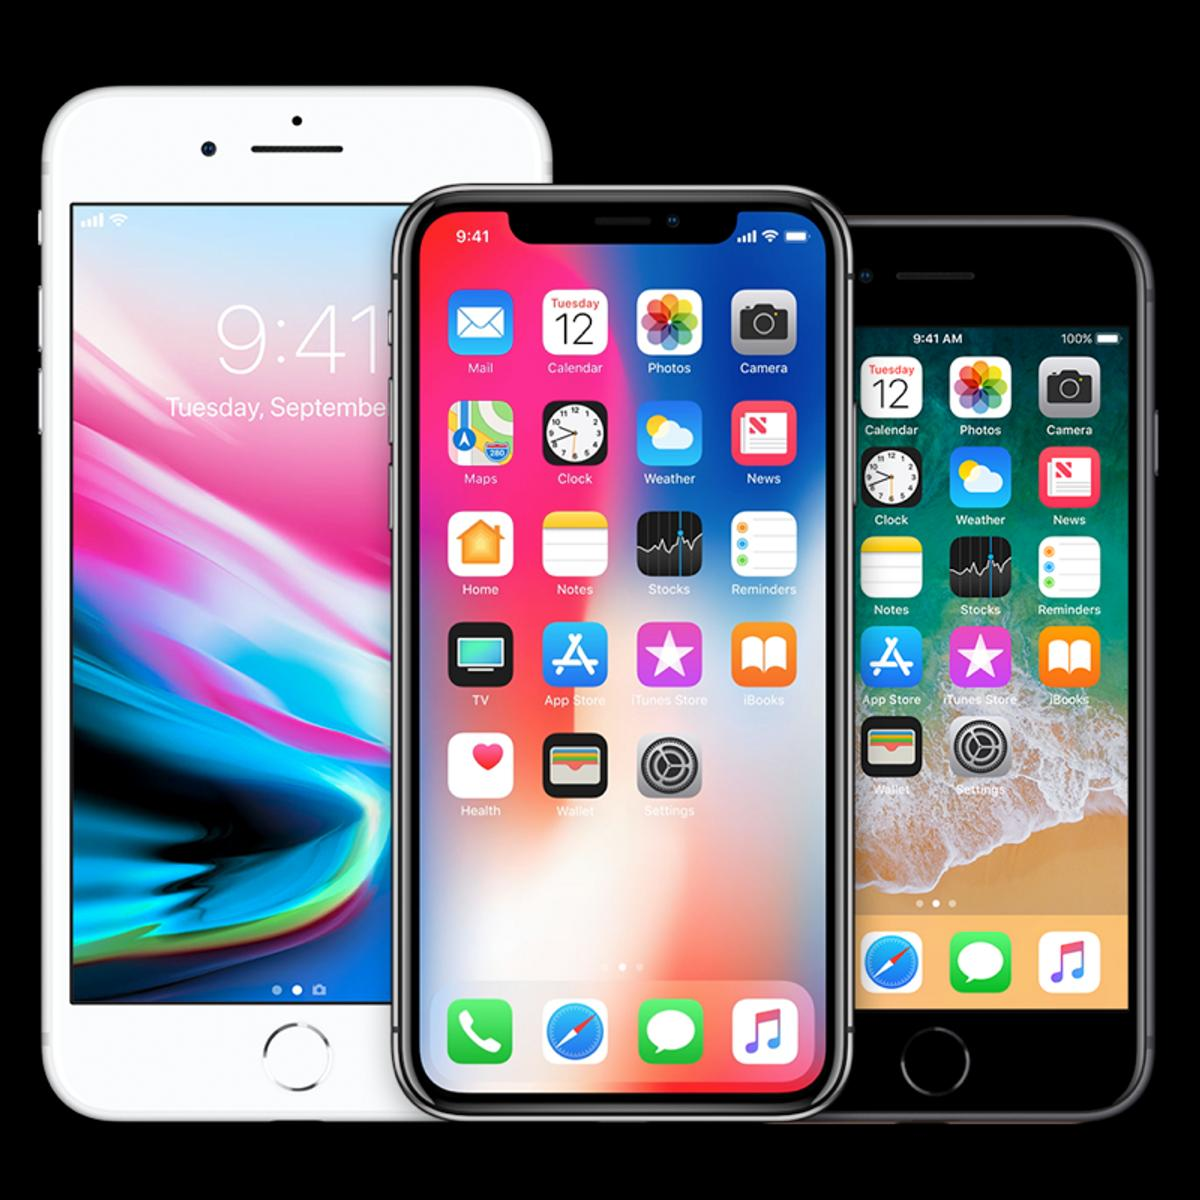 Mobile Phone Repair Services In B23 Birmingham For 1 00 For Sale Shpock